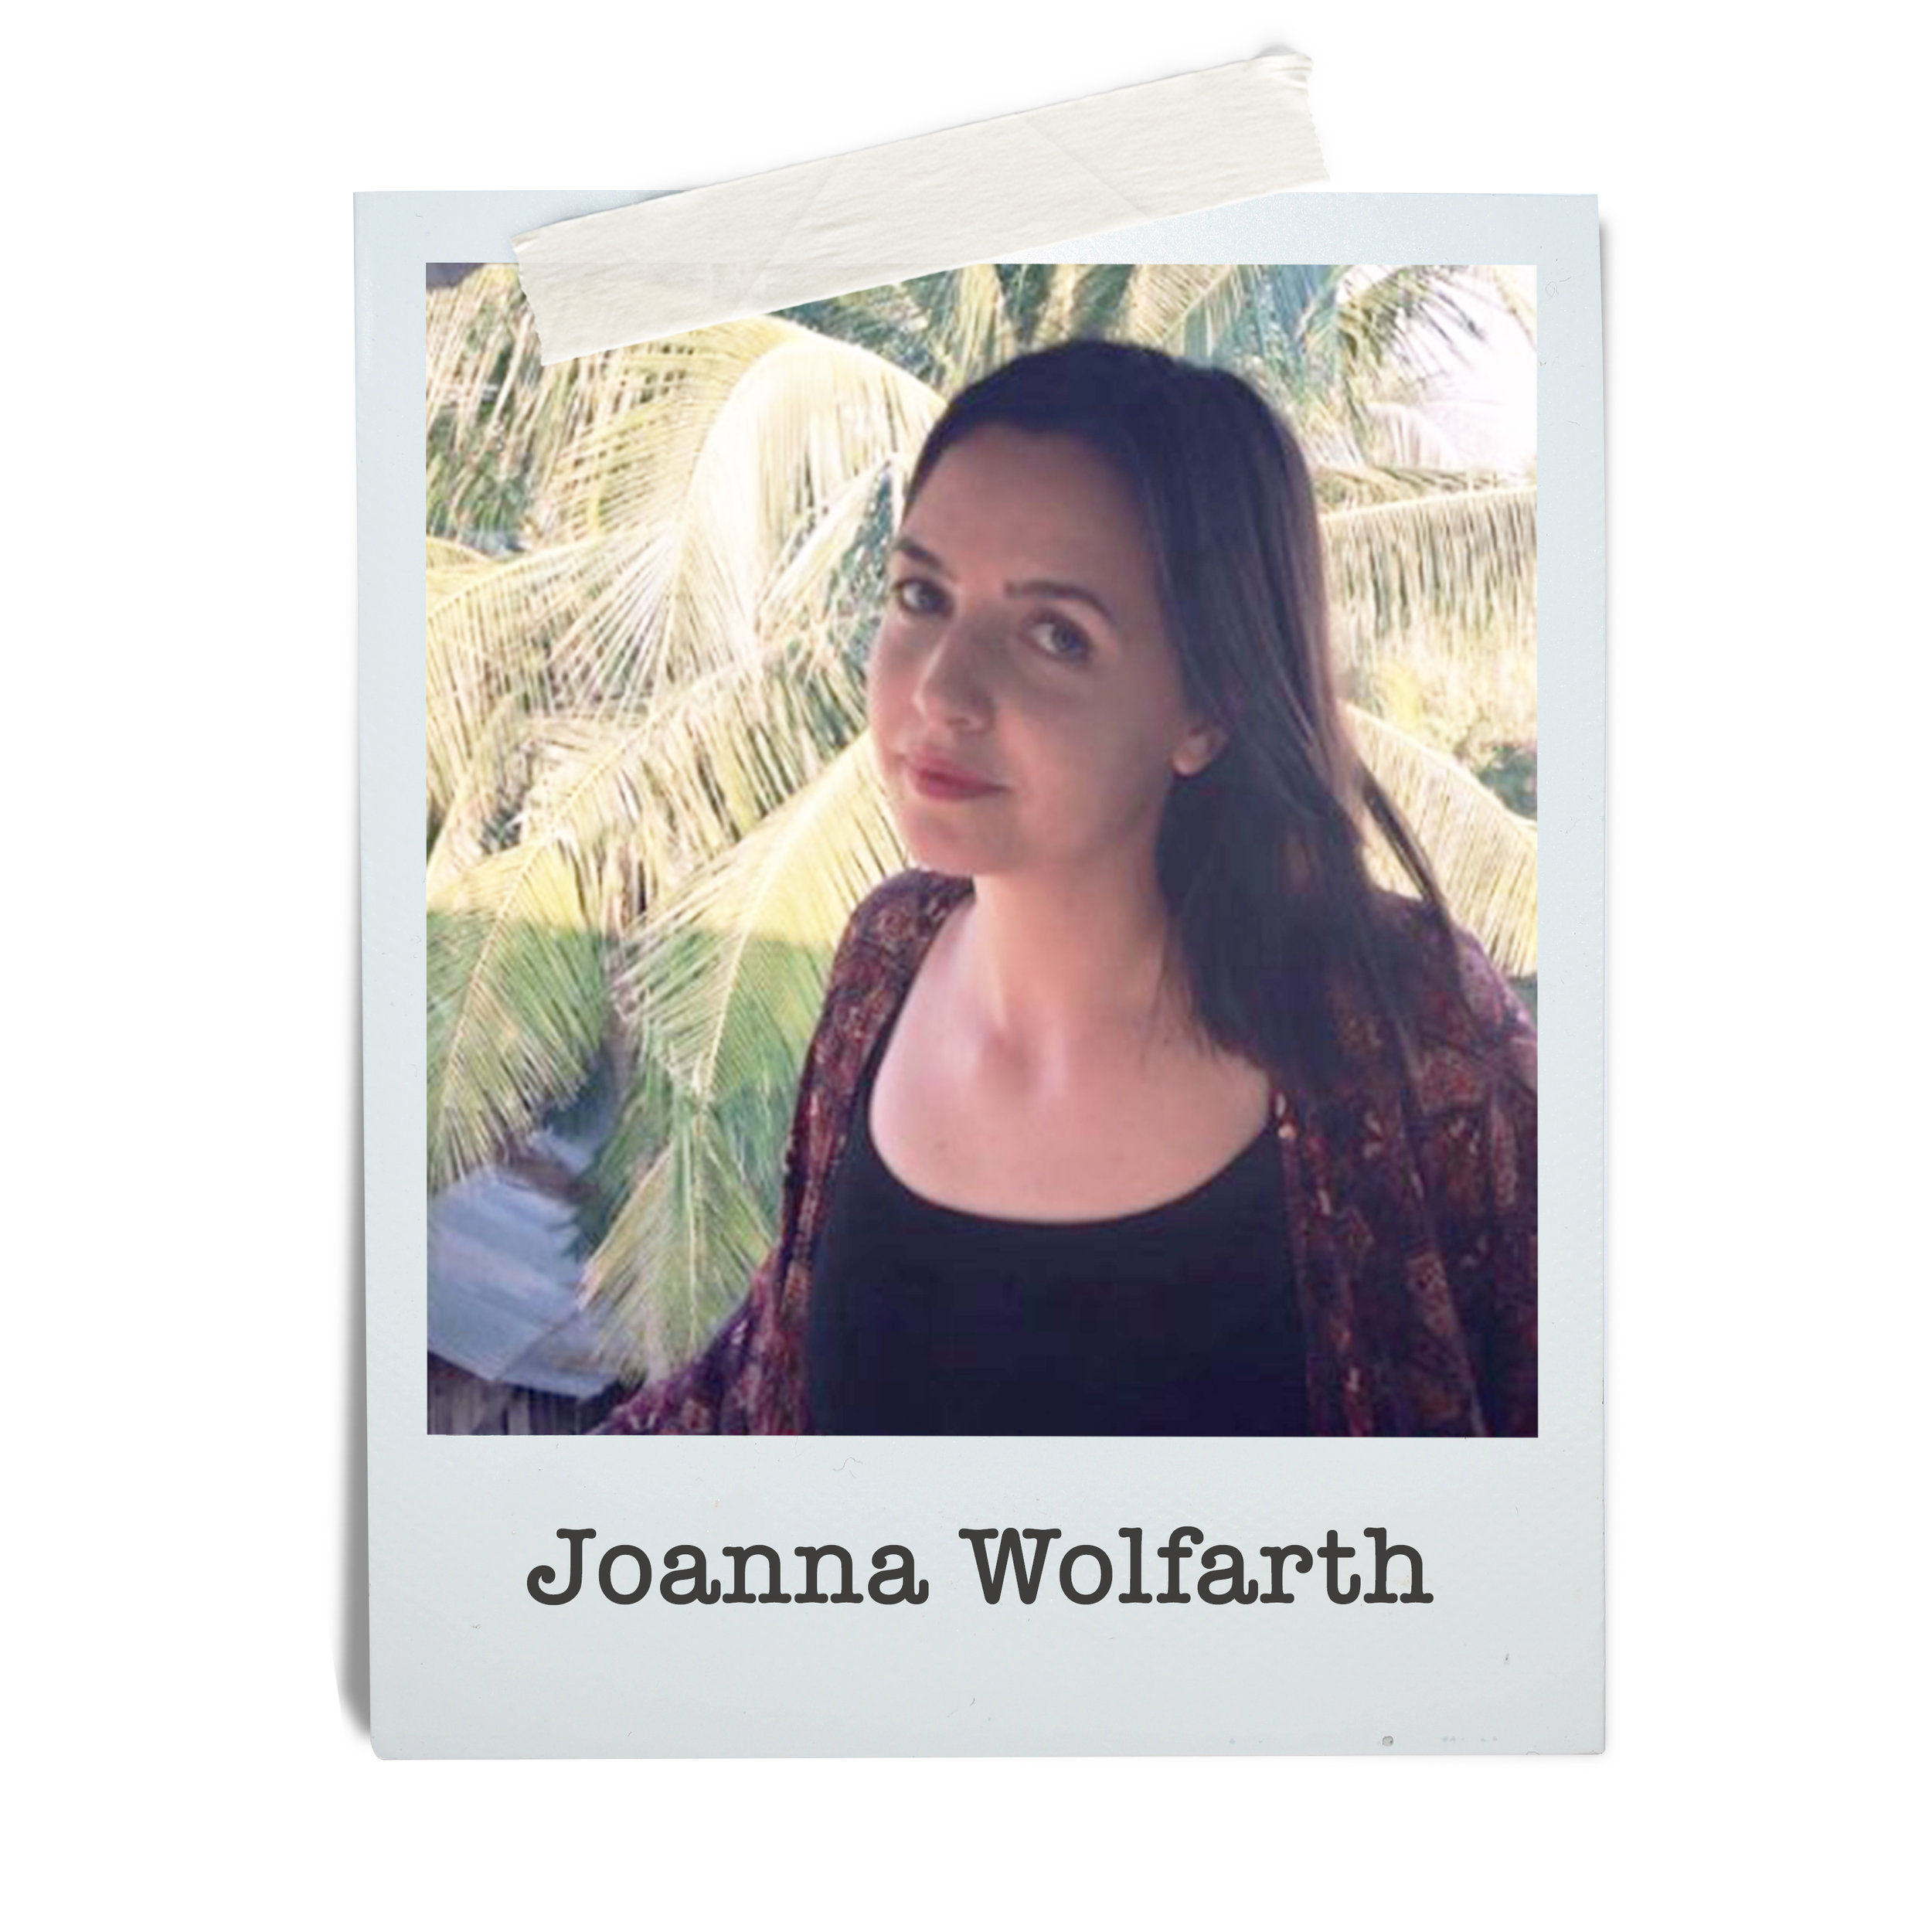 Joanna Wolfarth